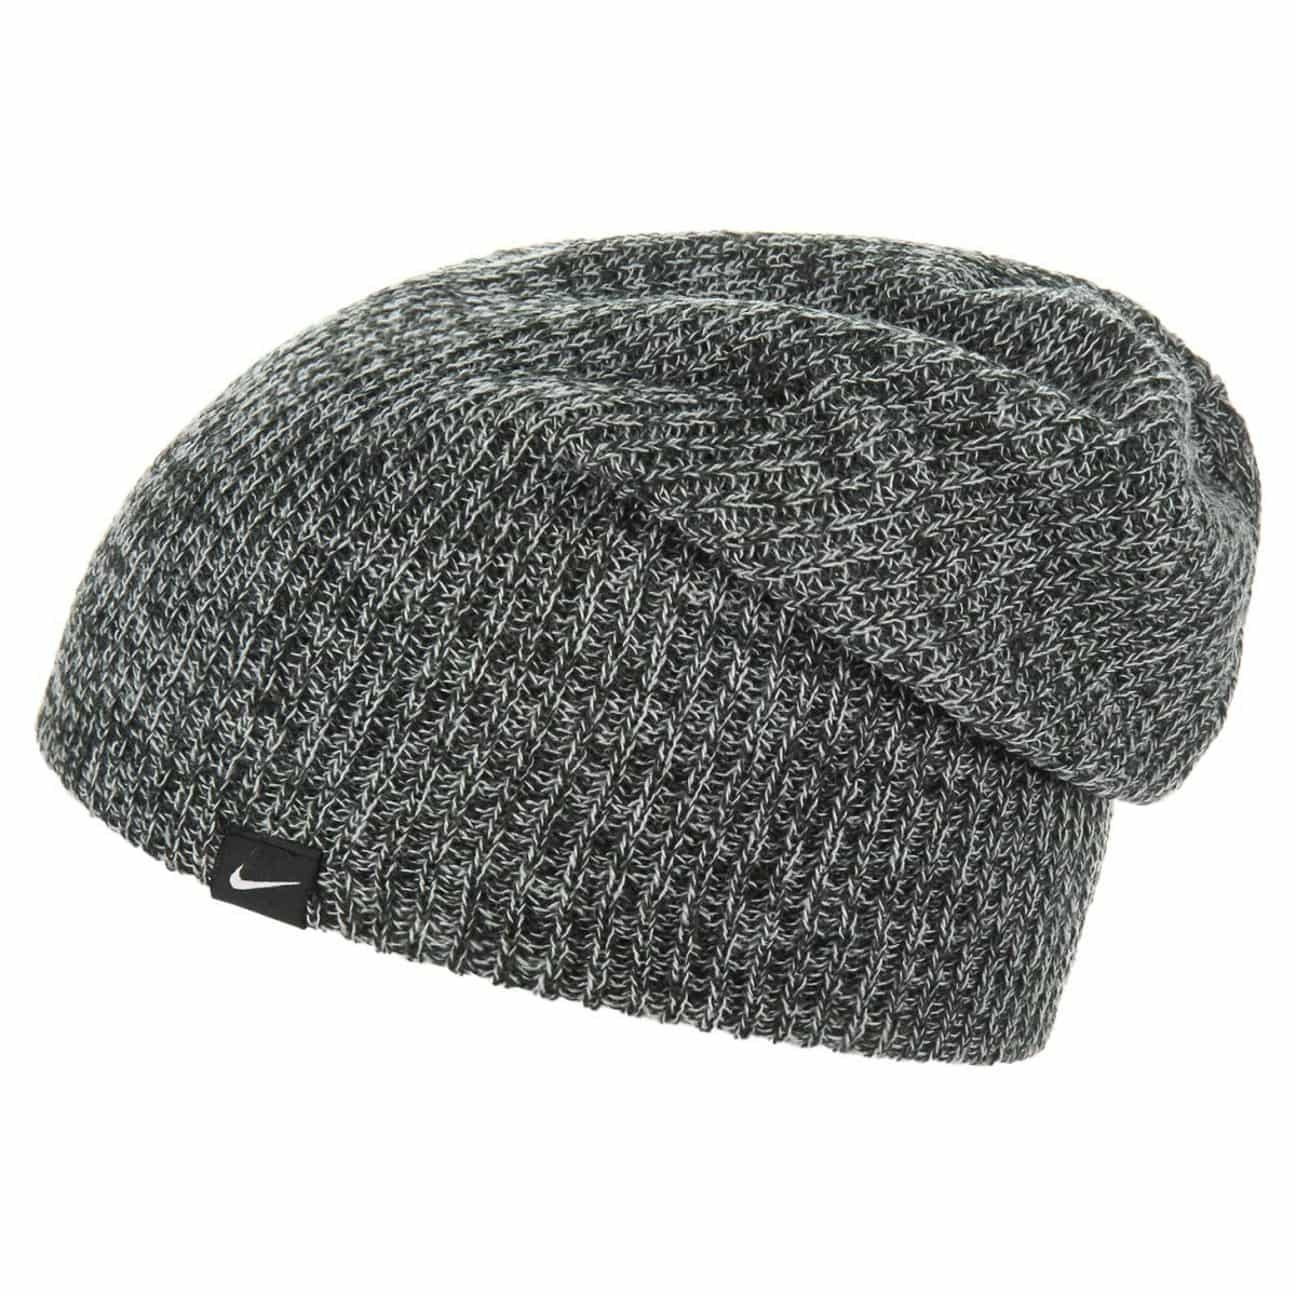 671c03e1e02 ... red 1 · Slouch Knit Beanie by Nike - green 1 ...